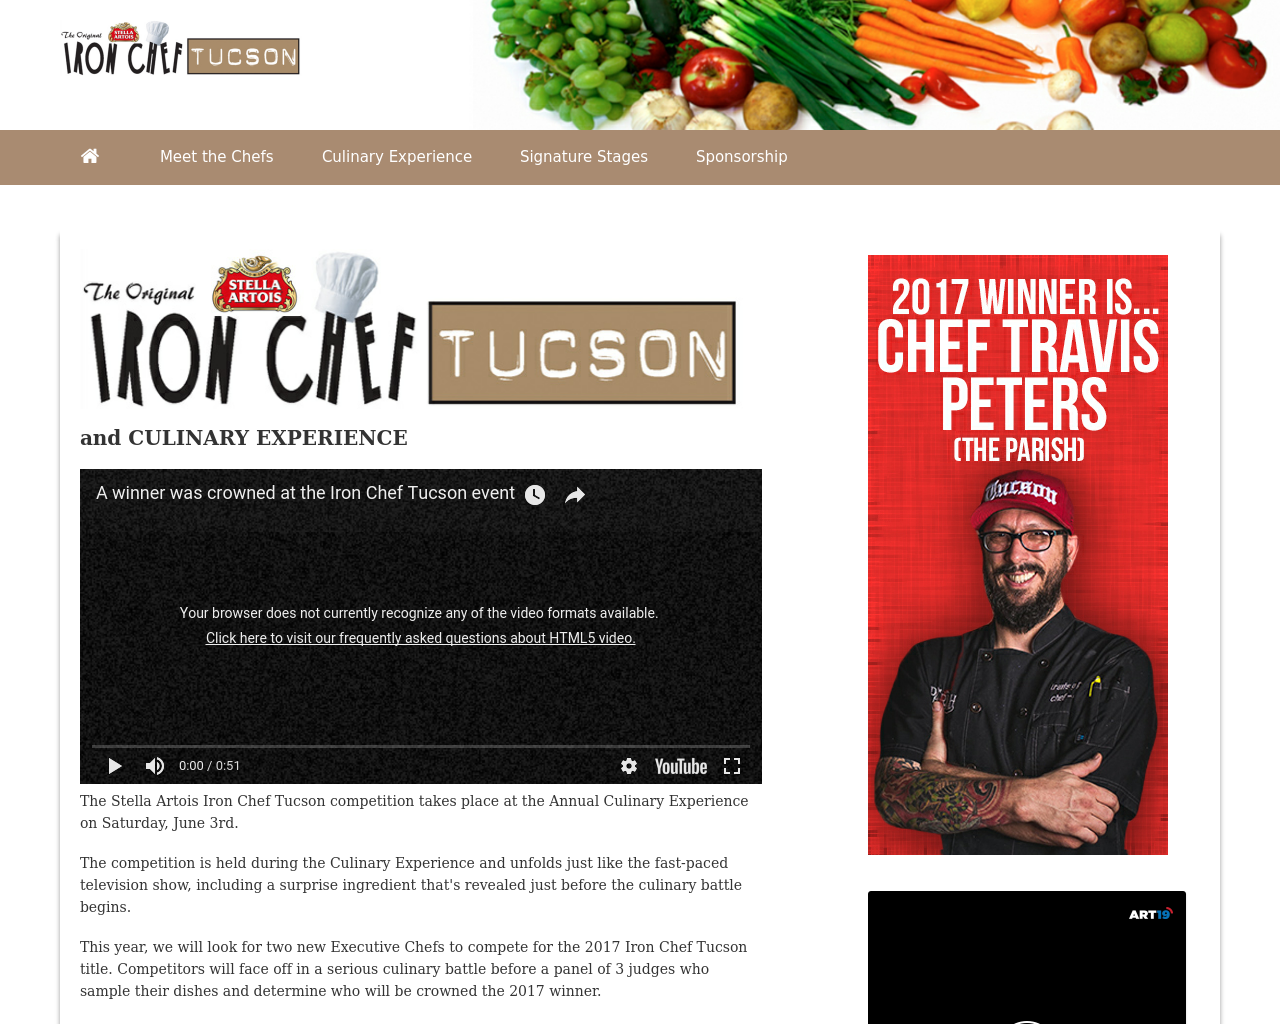 Iron-Chef-Tucson-Advertising-Reviews-Pricing